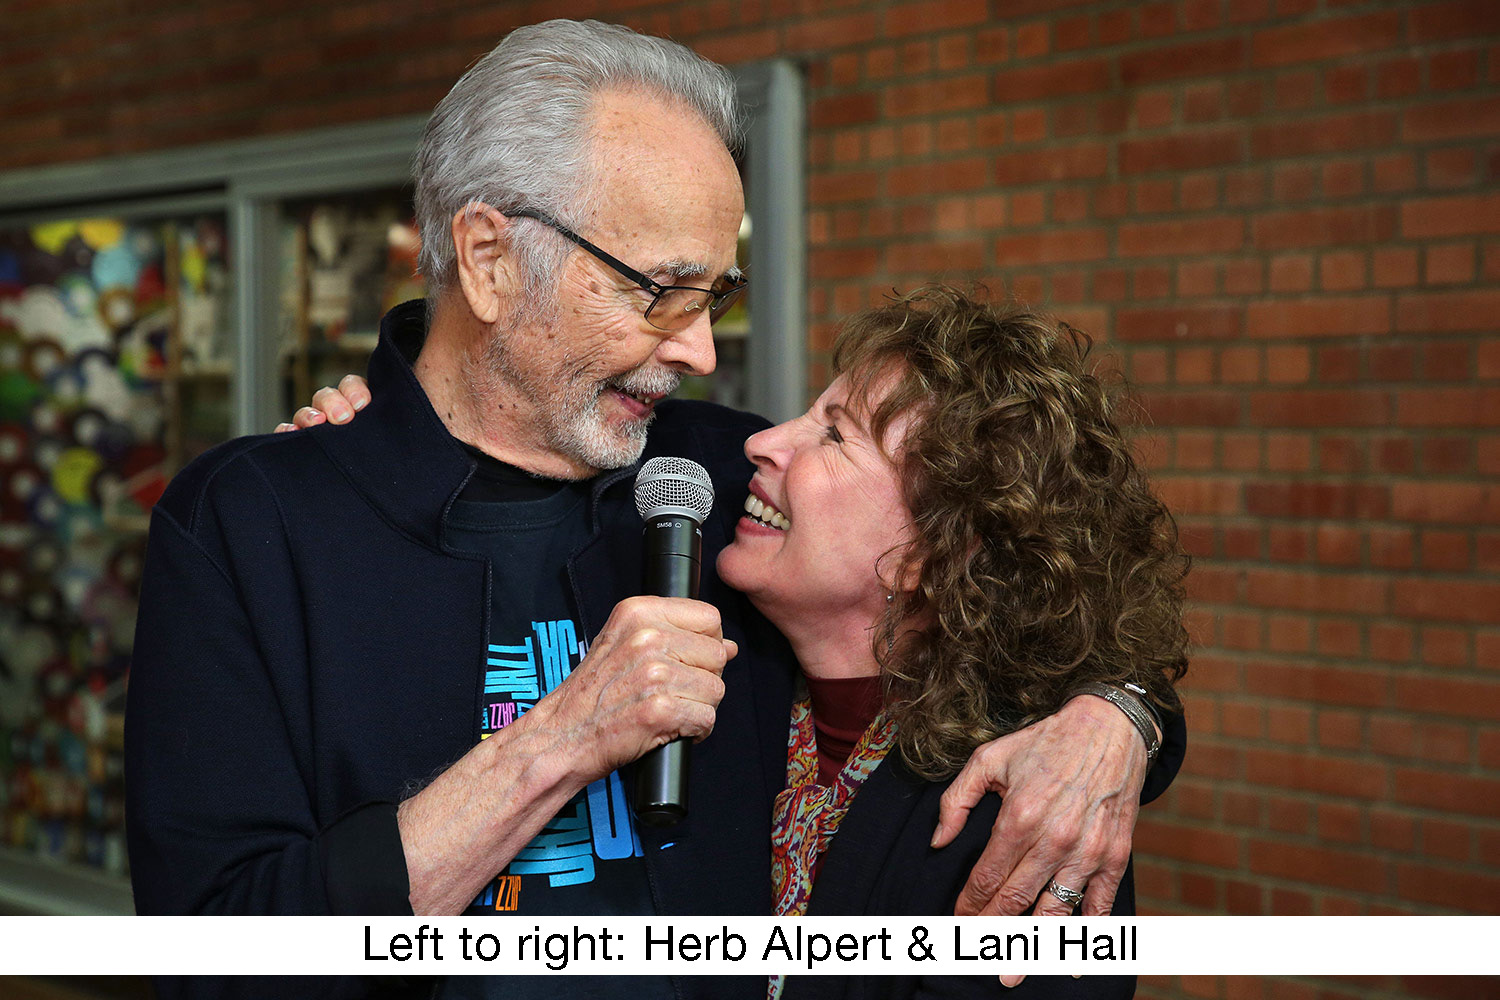 The Herb Alpert Foundation engaged WSDG to design the acoustics for a small on-campus live performance theater at the prestigious UCLA, with help of Lani Hall. Herb Alpert and Lani Hall.